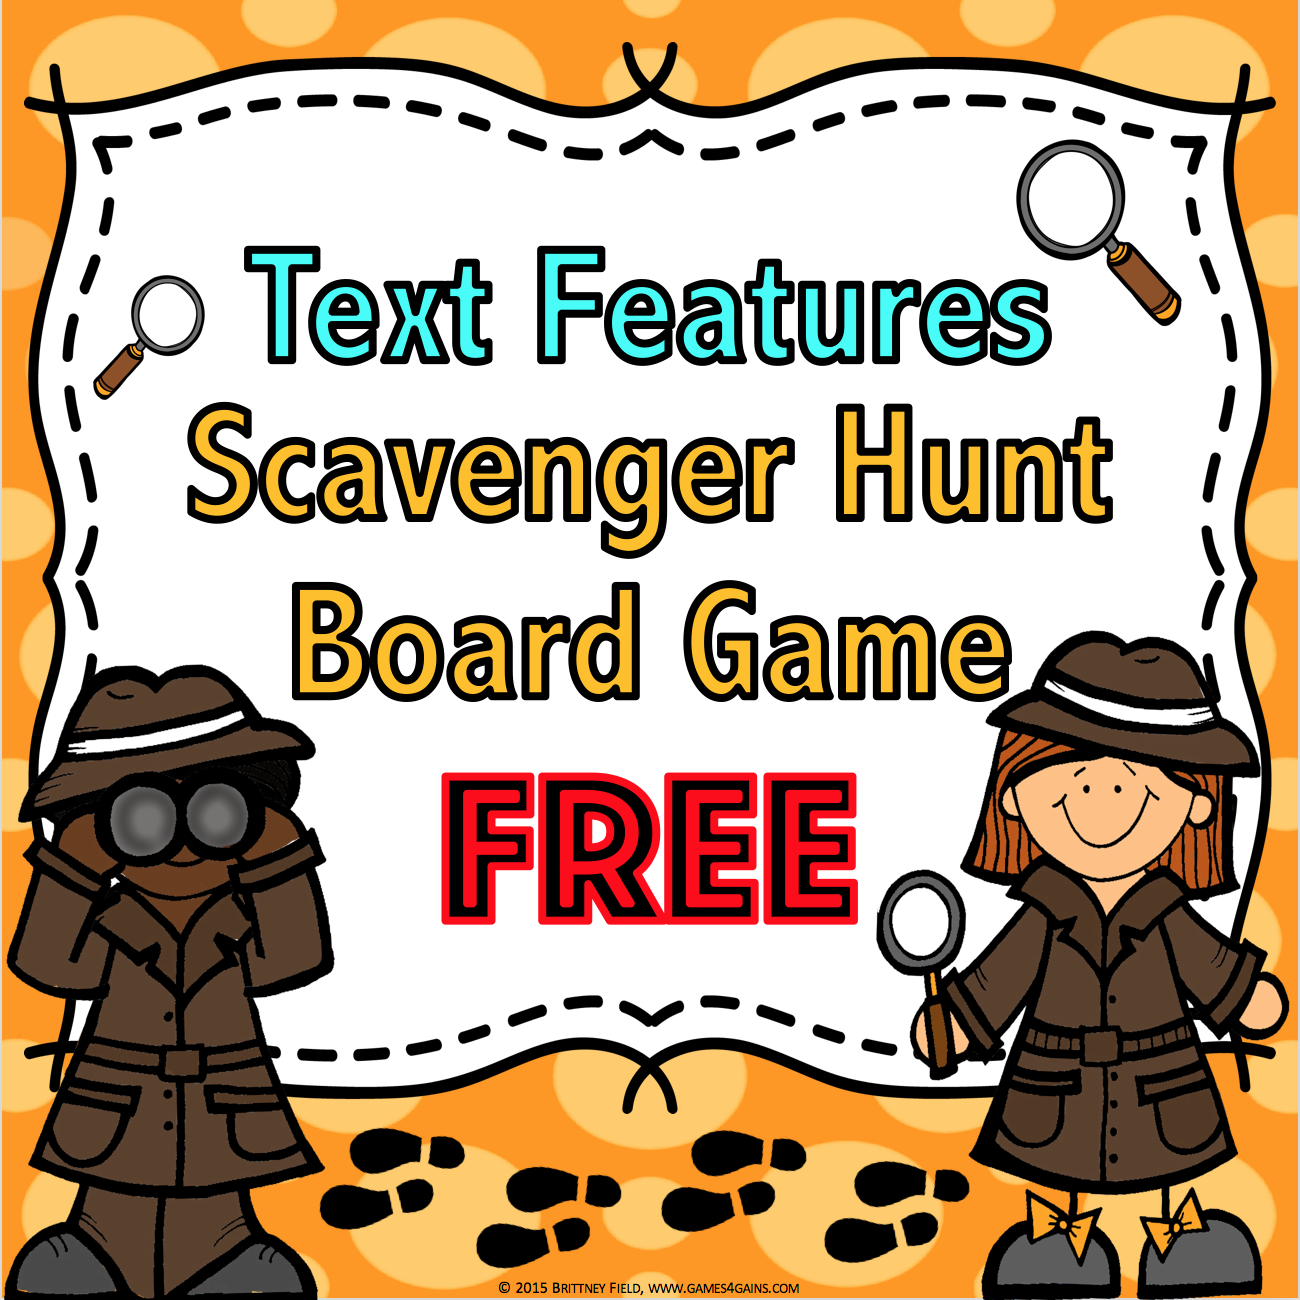 Text Features Scavenger Hunt Game Free Contains 27 Text